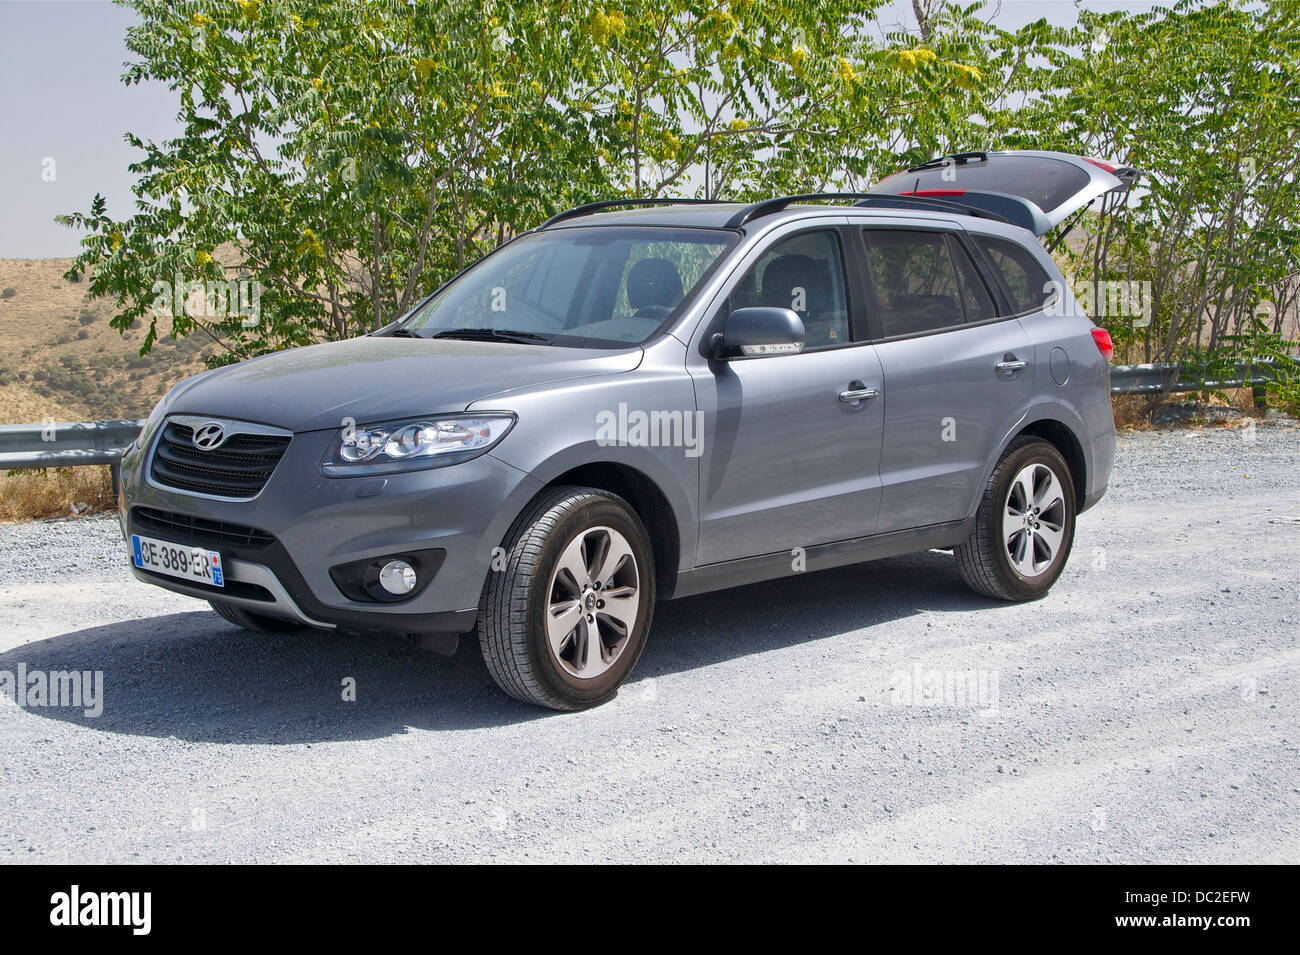 Hyundai 'Santa Fe' DM in vivo - Stock Image